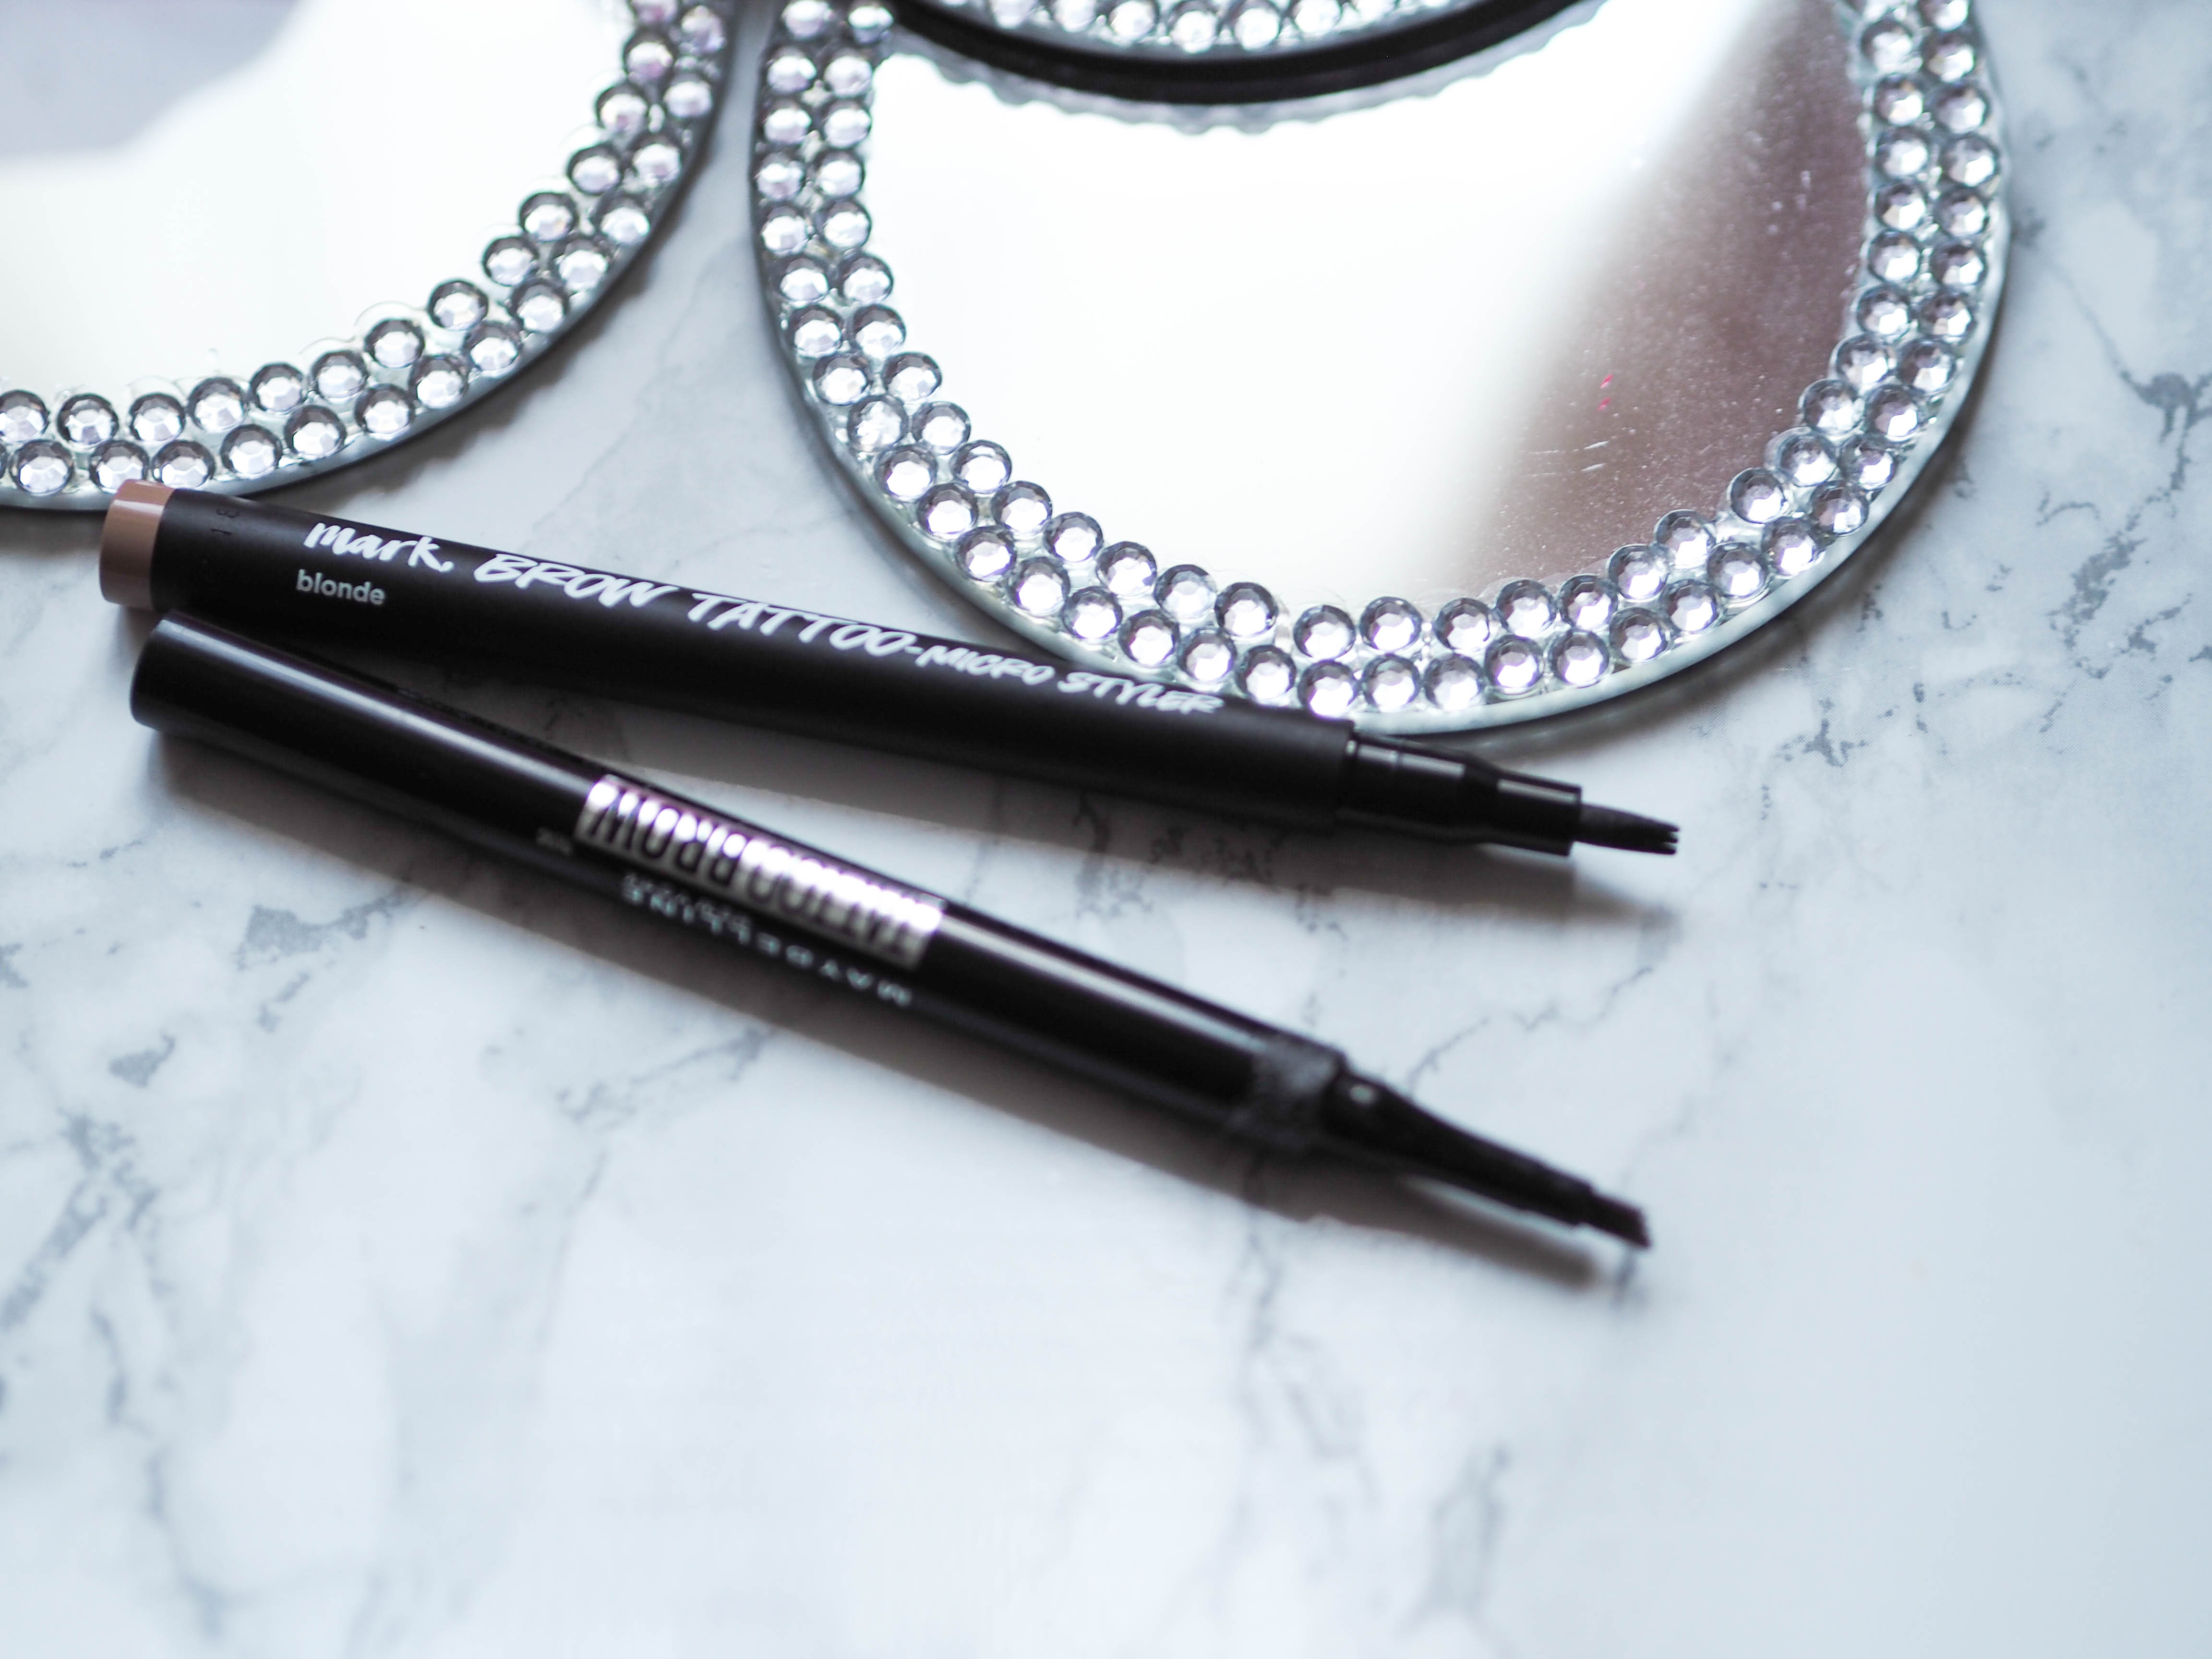 Maybelline Tattoo Brow Master Ink Pen Review